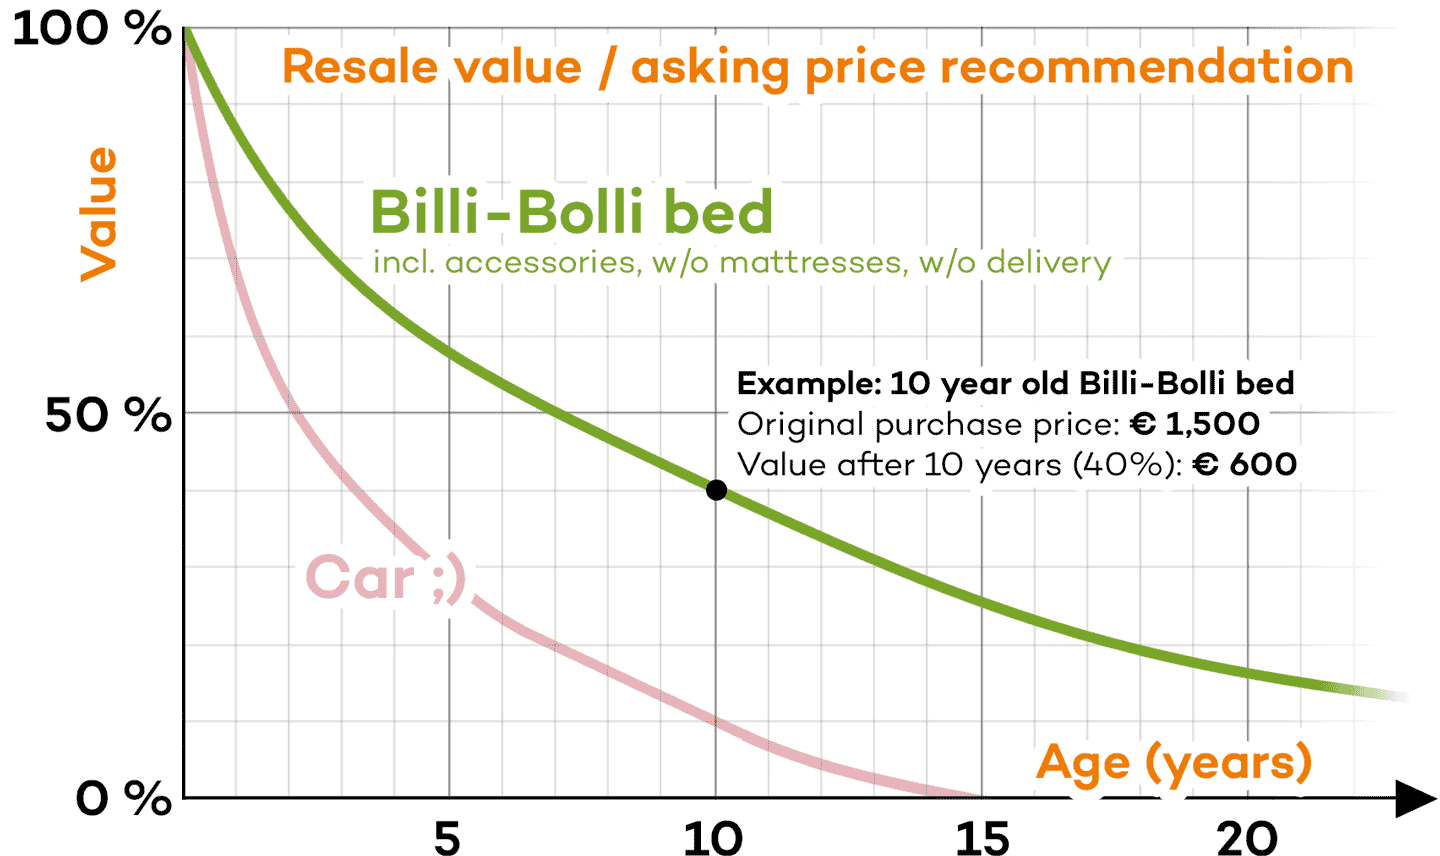 Resale value / asking price recommendation for Billi-Bolli Beds